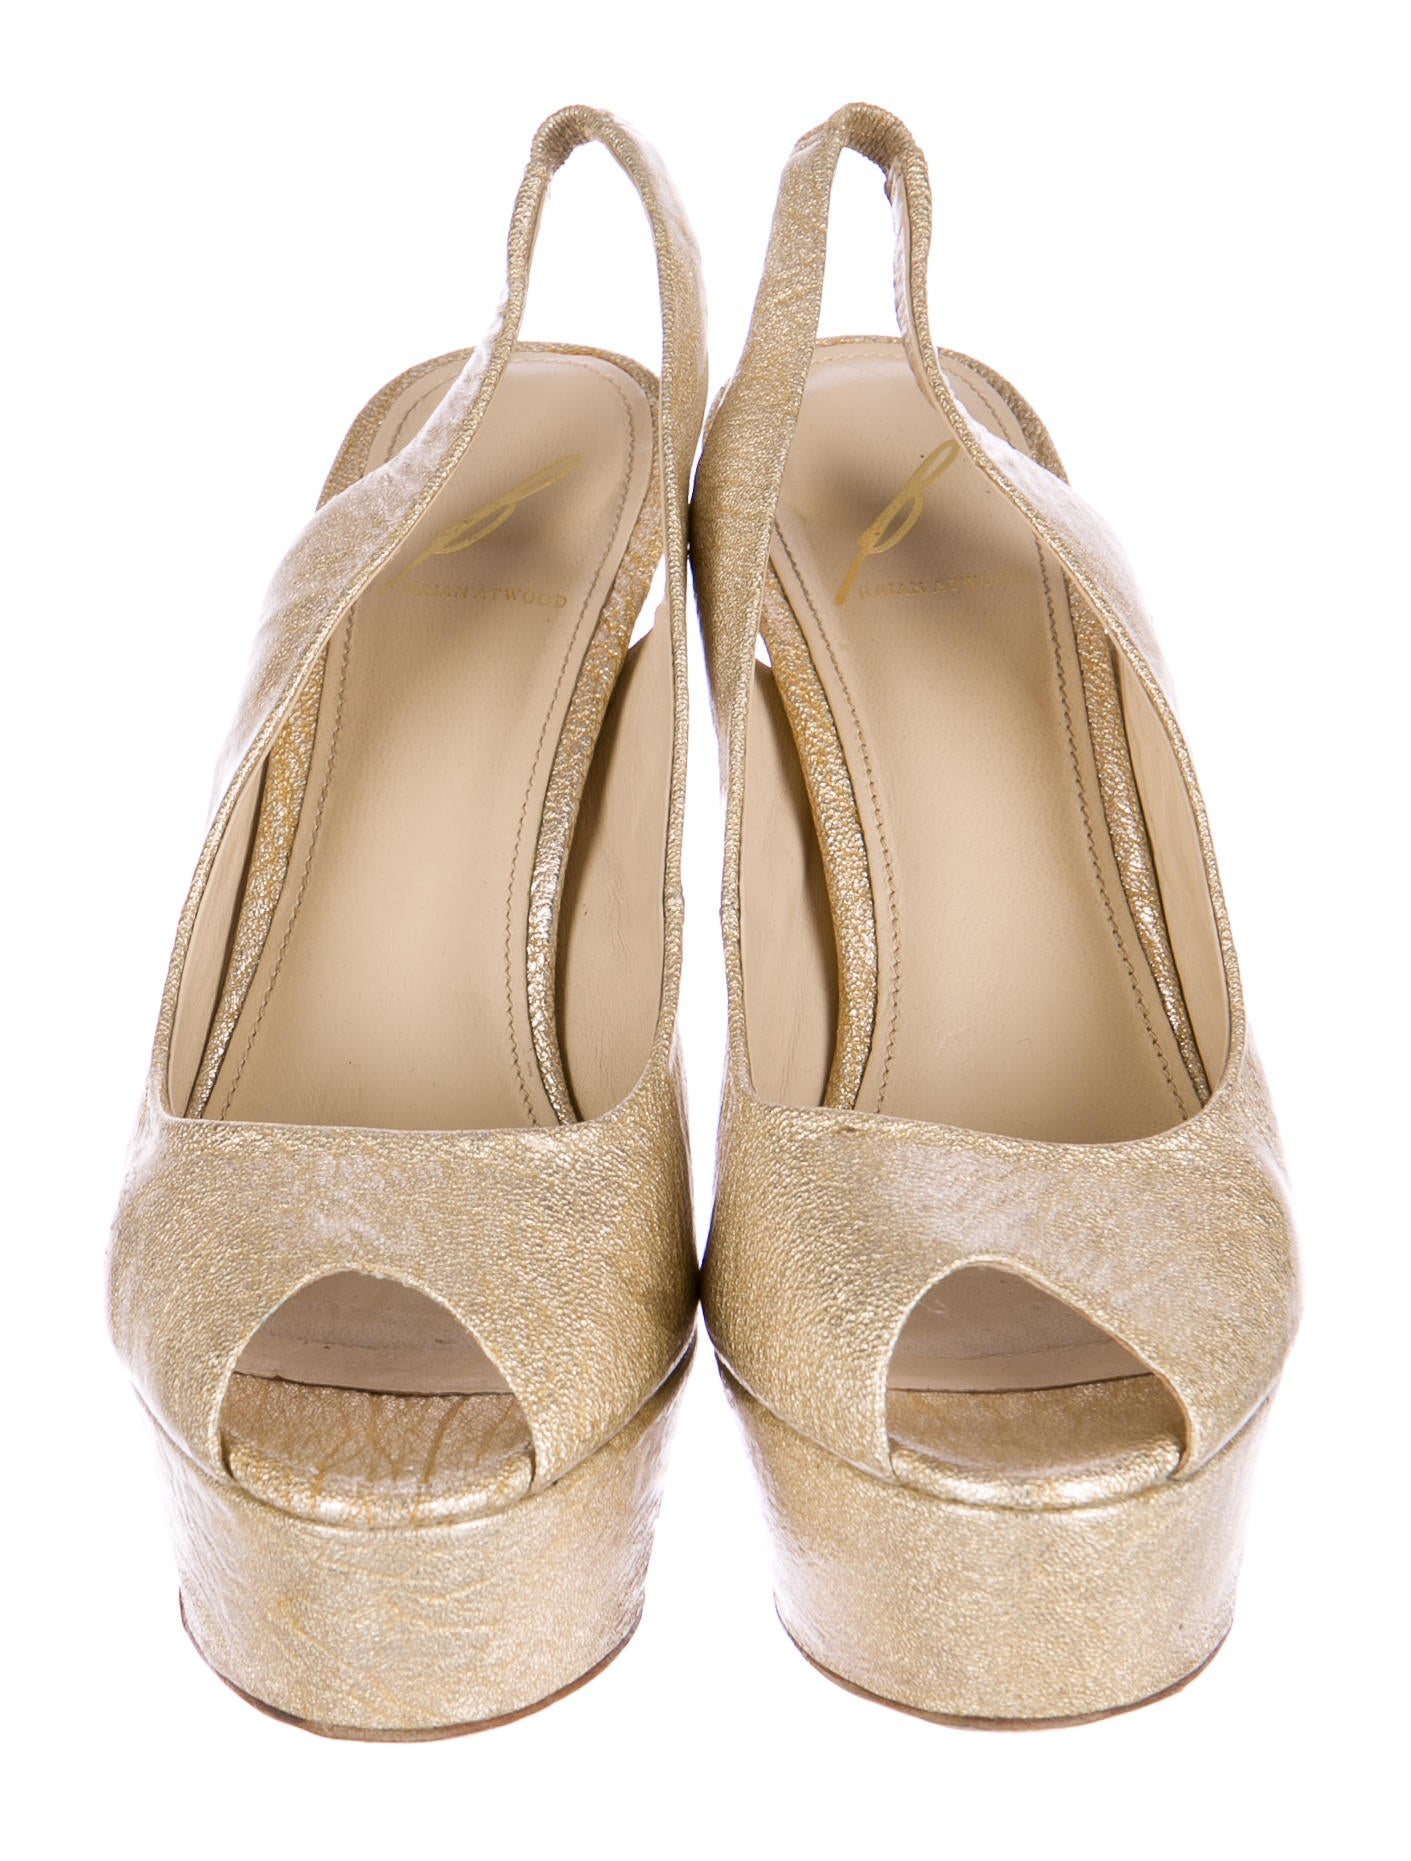 b brian atwood coated leather slingback pumps shoes